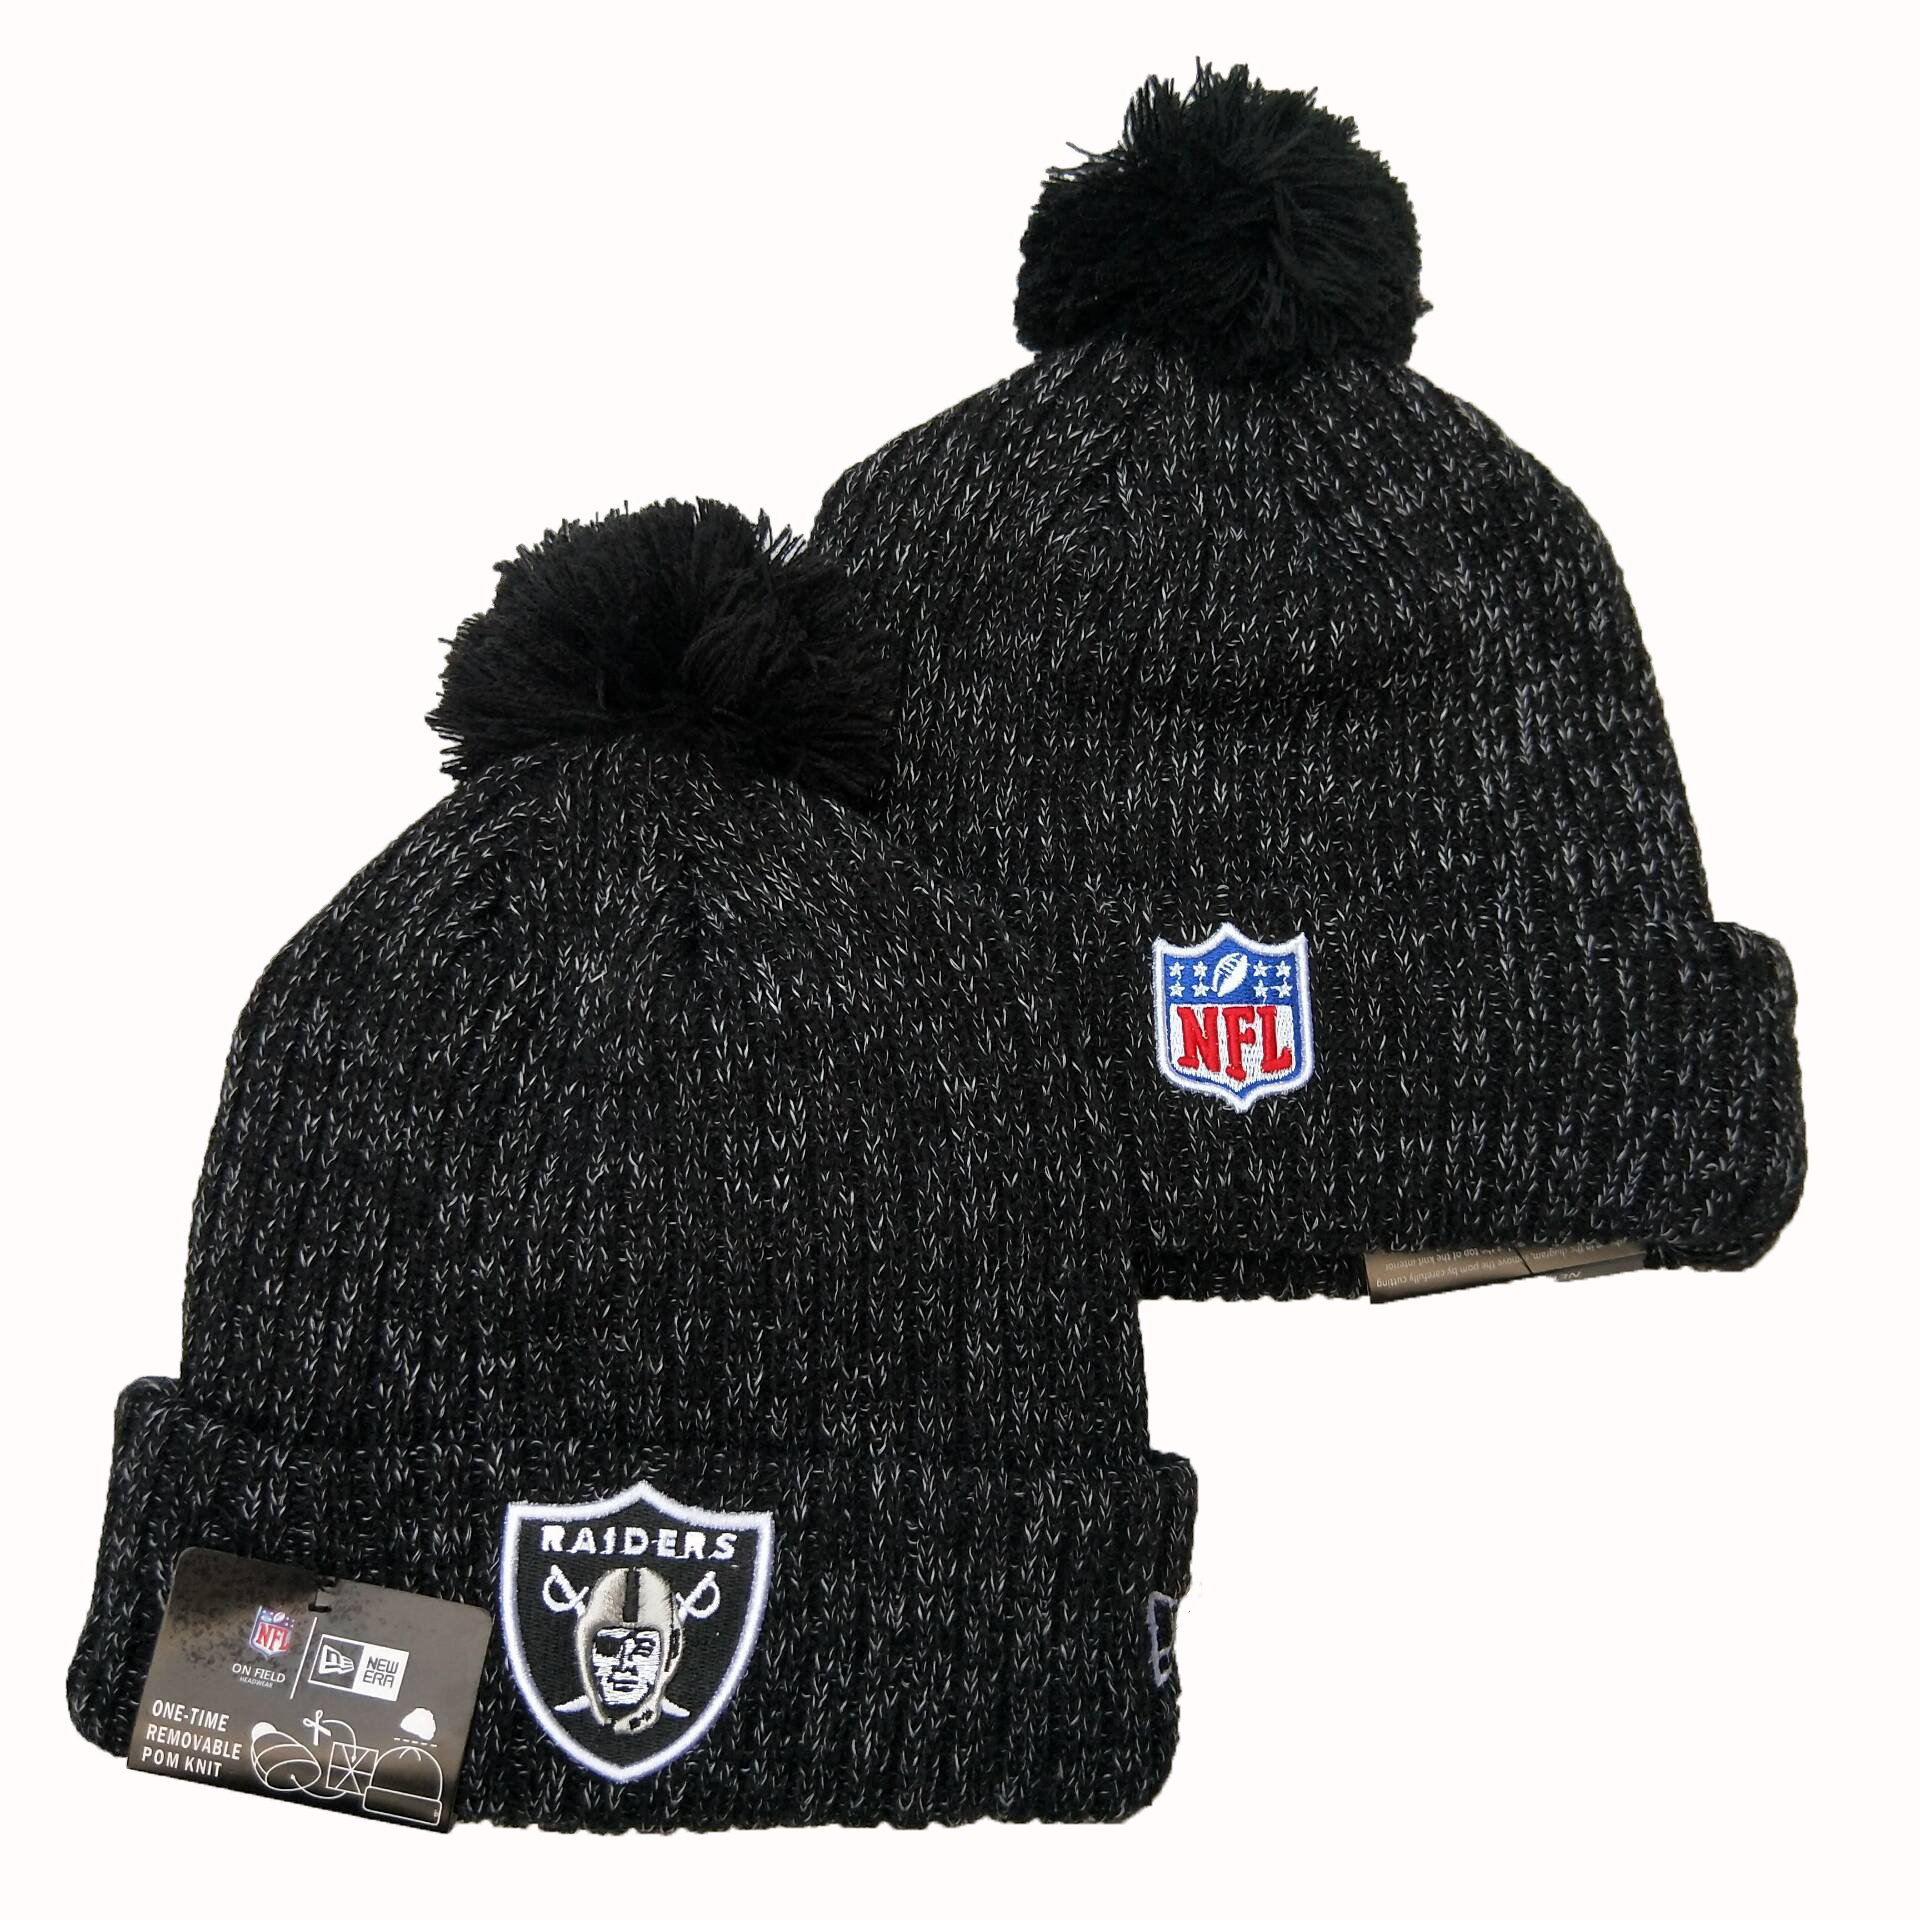 Las Vegas Raiders Knit Hats 062